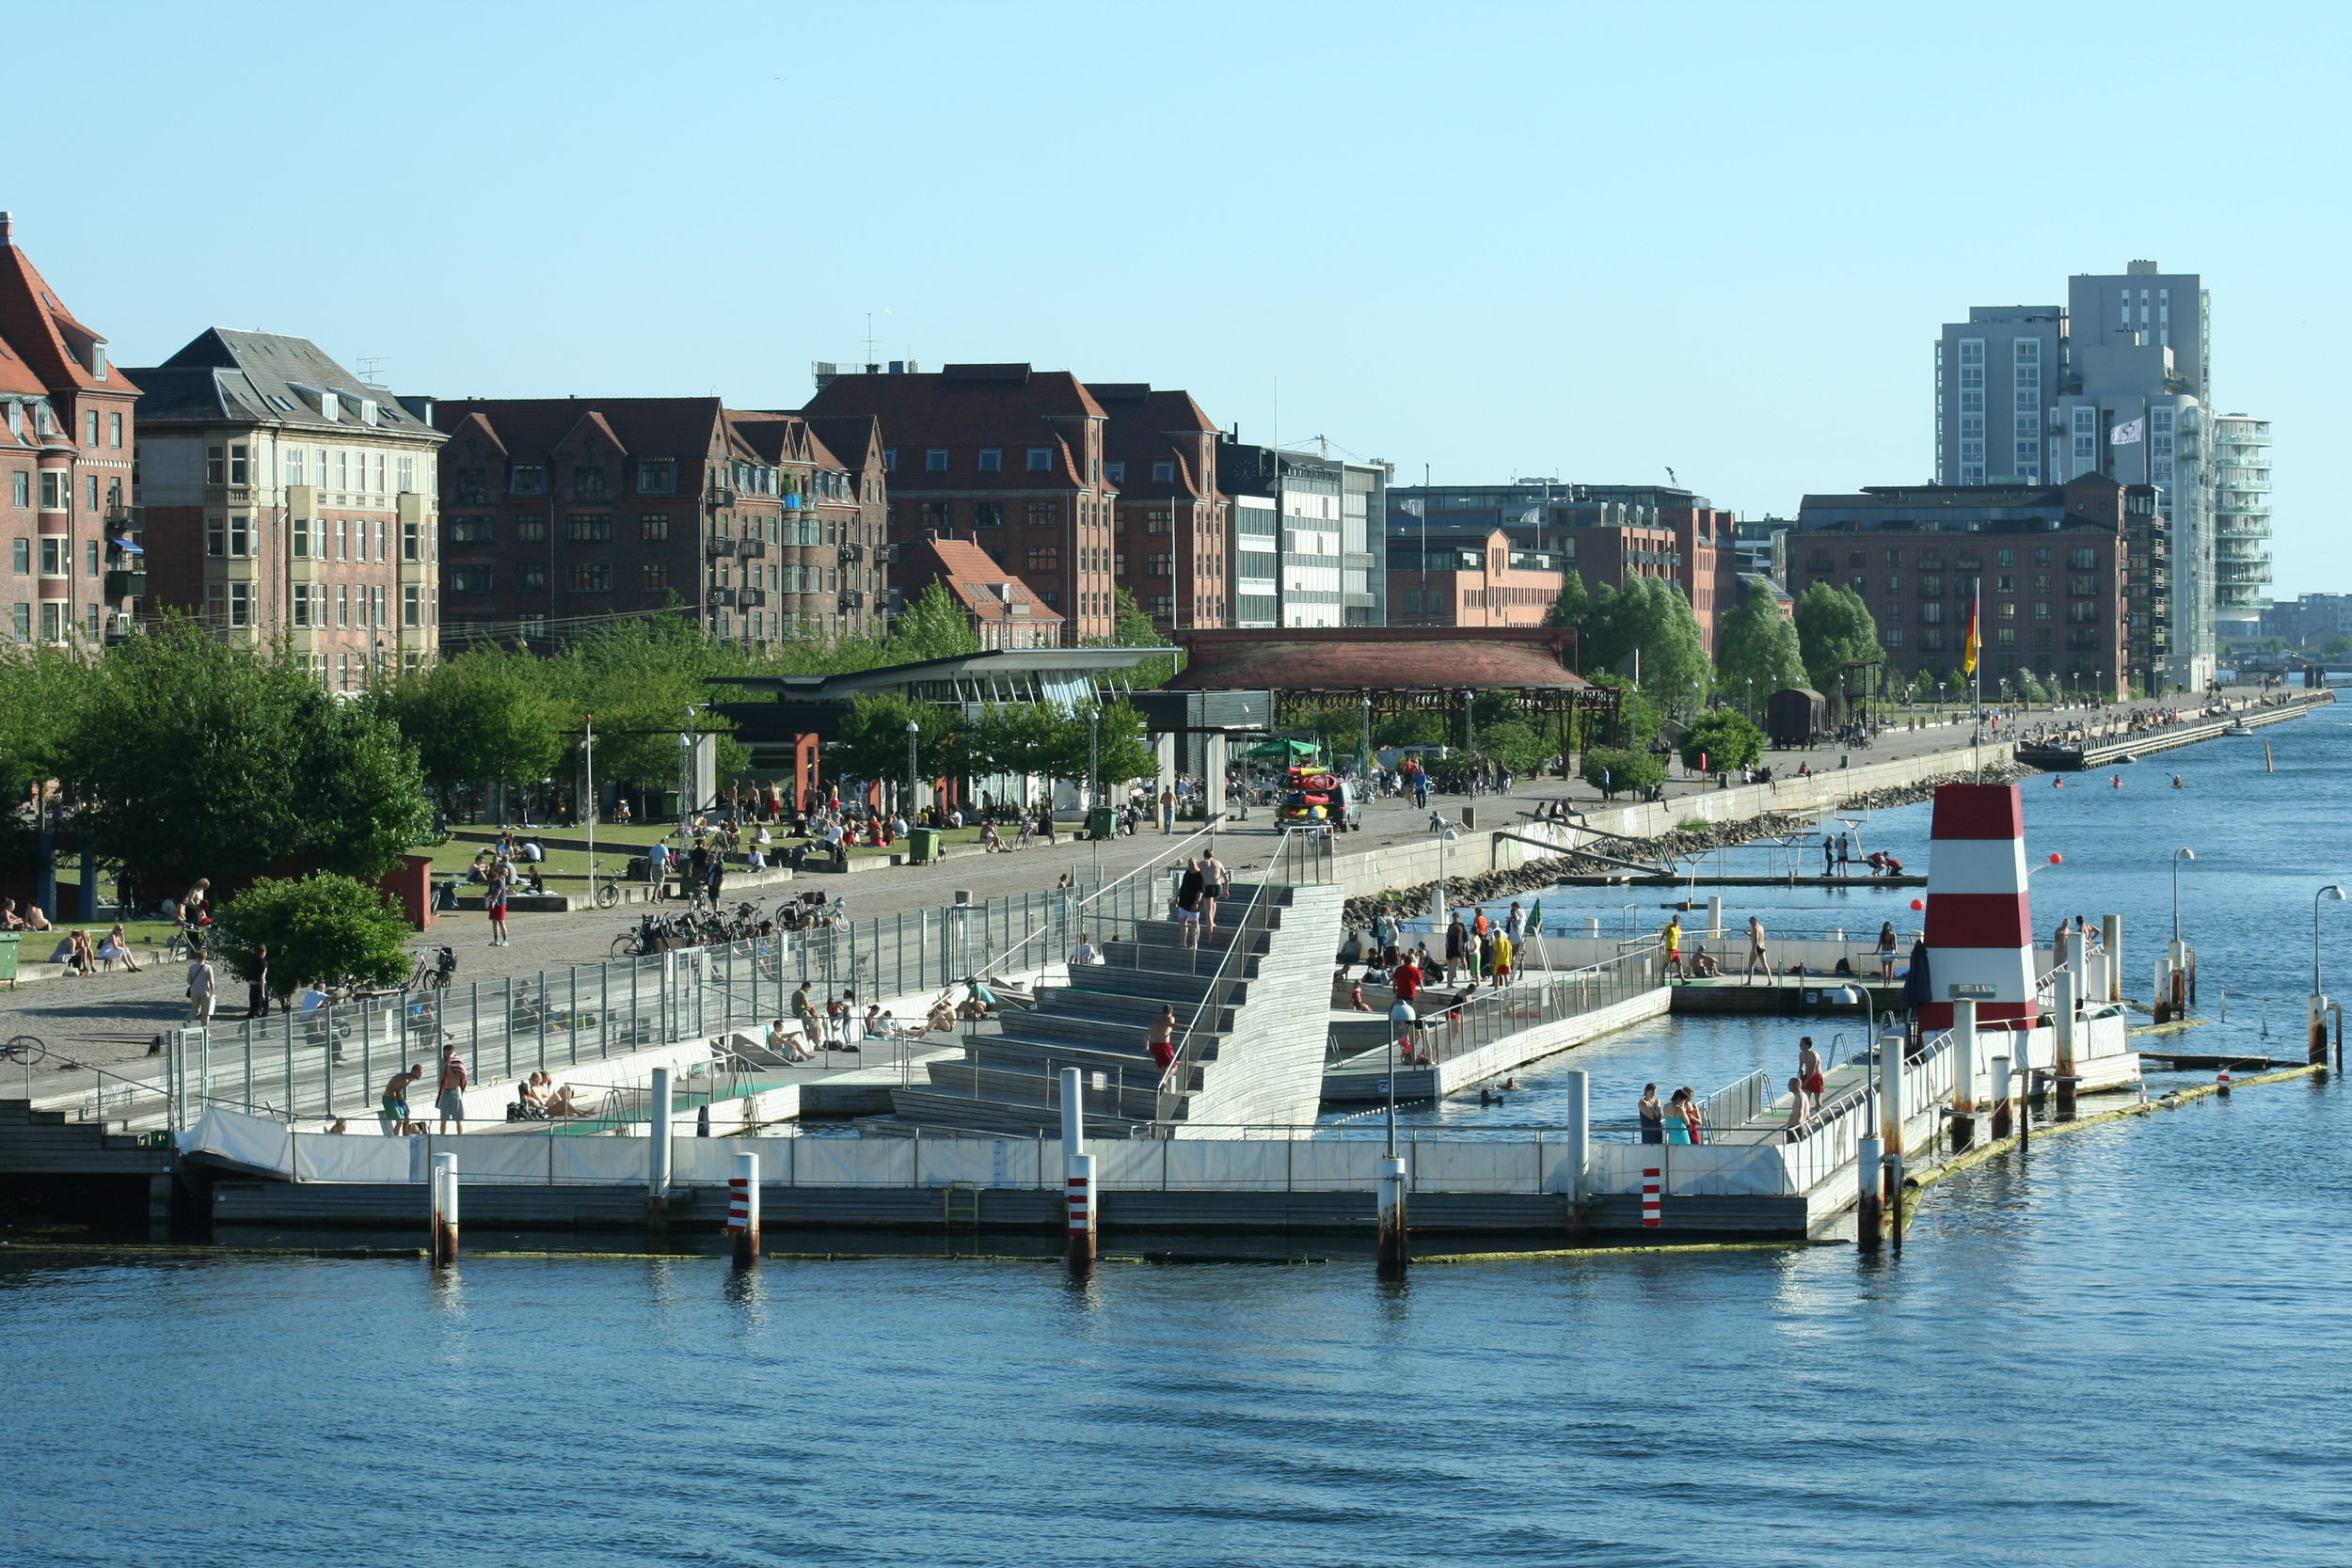 The Copenhagen Harbour Bath in Denmark makes swimming possible for the residents of Copenhagen right in the heart of the city. Photo taken by  Jacob Friis Saxberg .